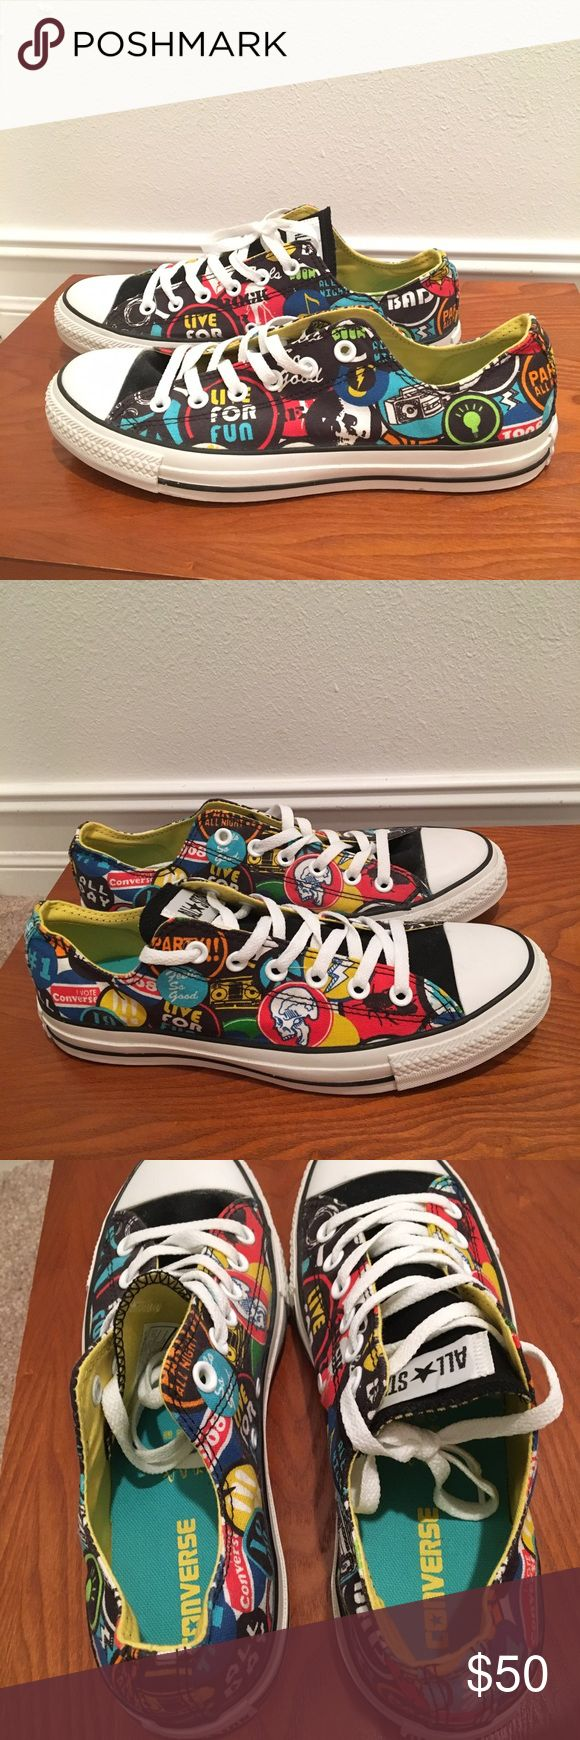 Colorful converse low tops Brand new, never worn converse low tops! These have a cool collage pin design with a skull. Women's 10, men's 8. Converse Shoes Sneakers